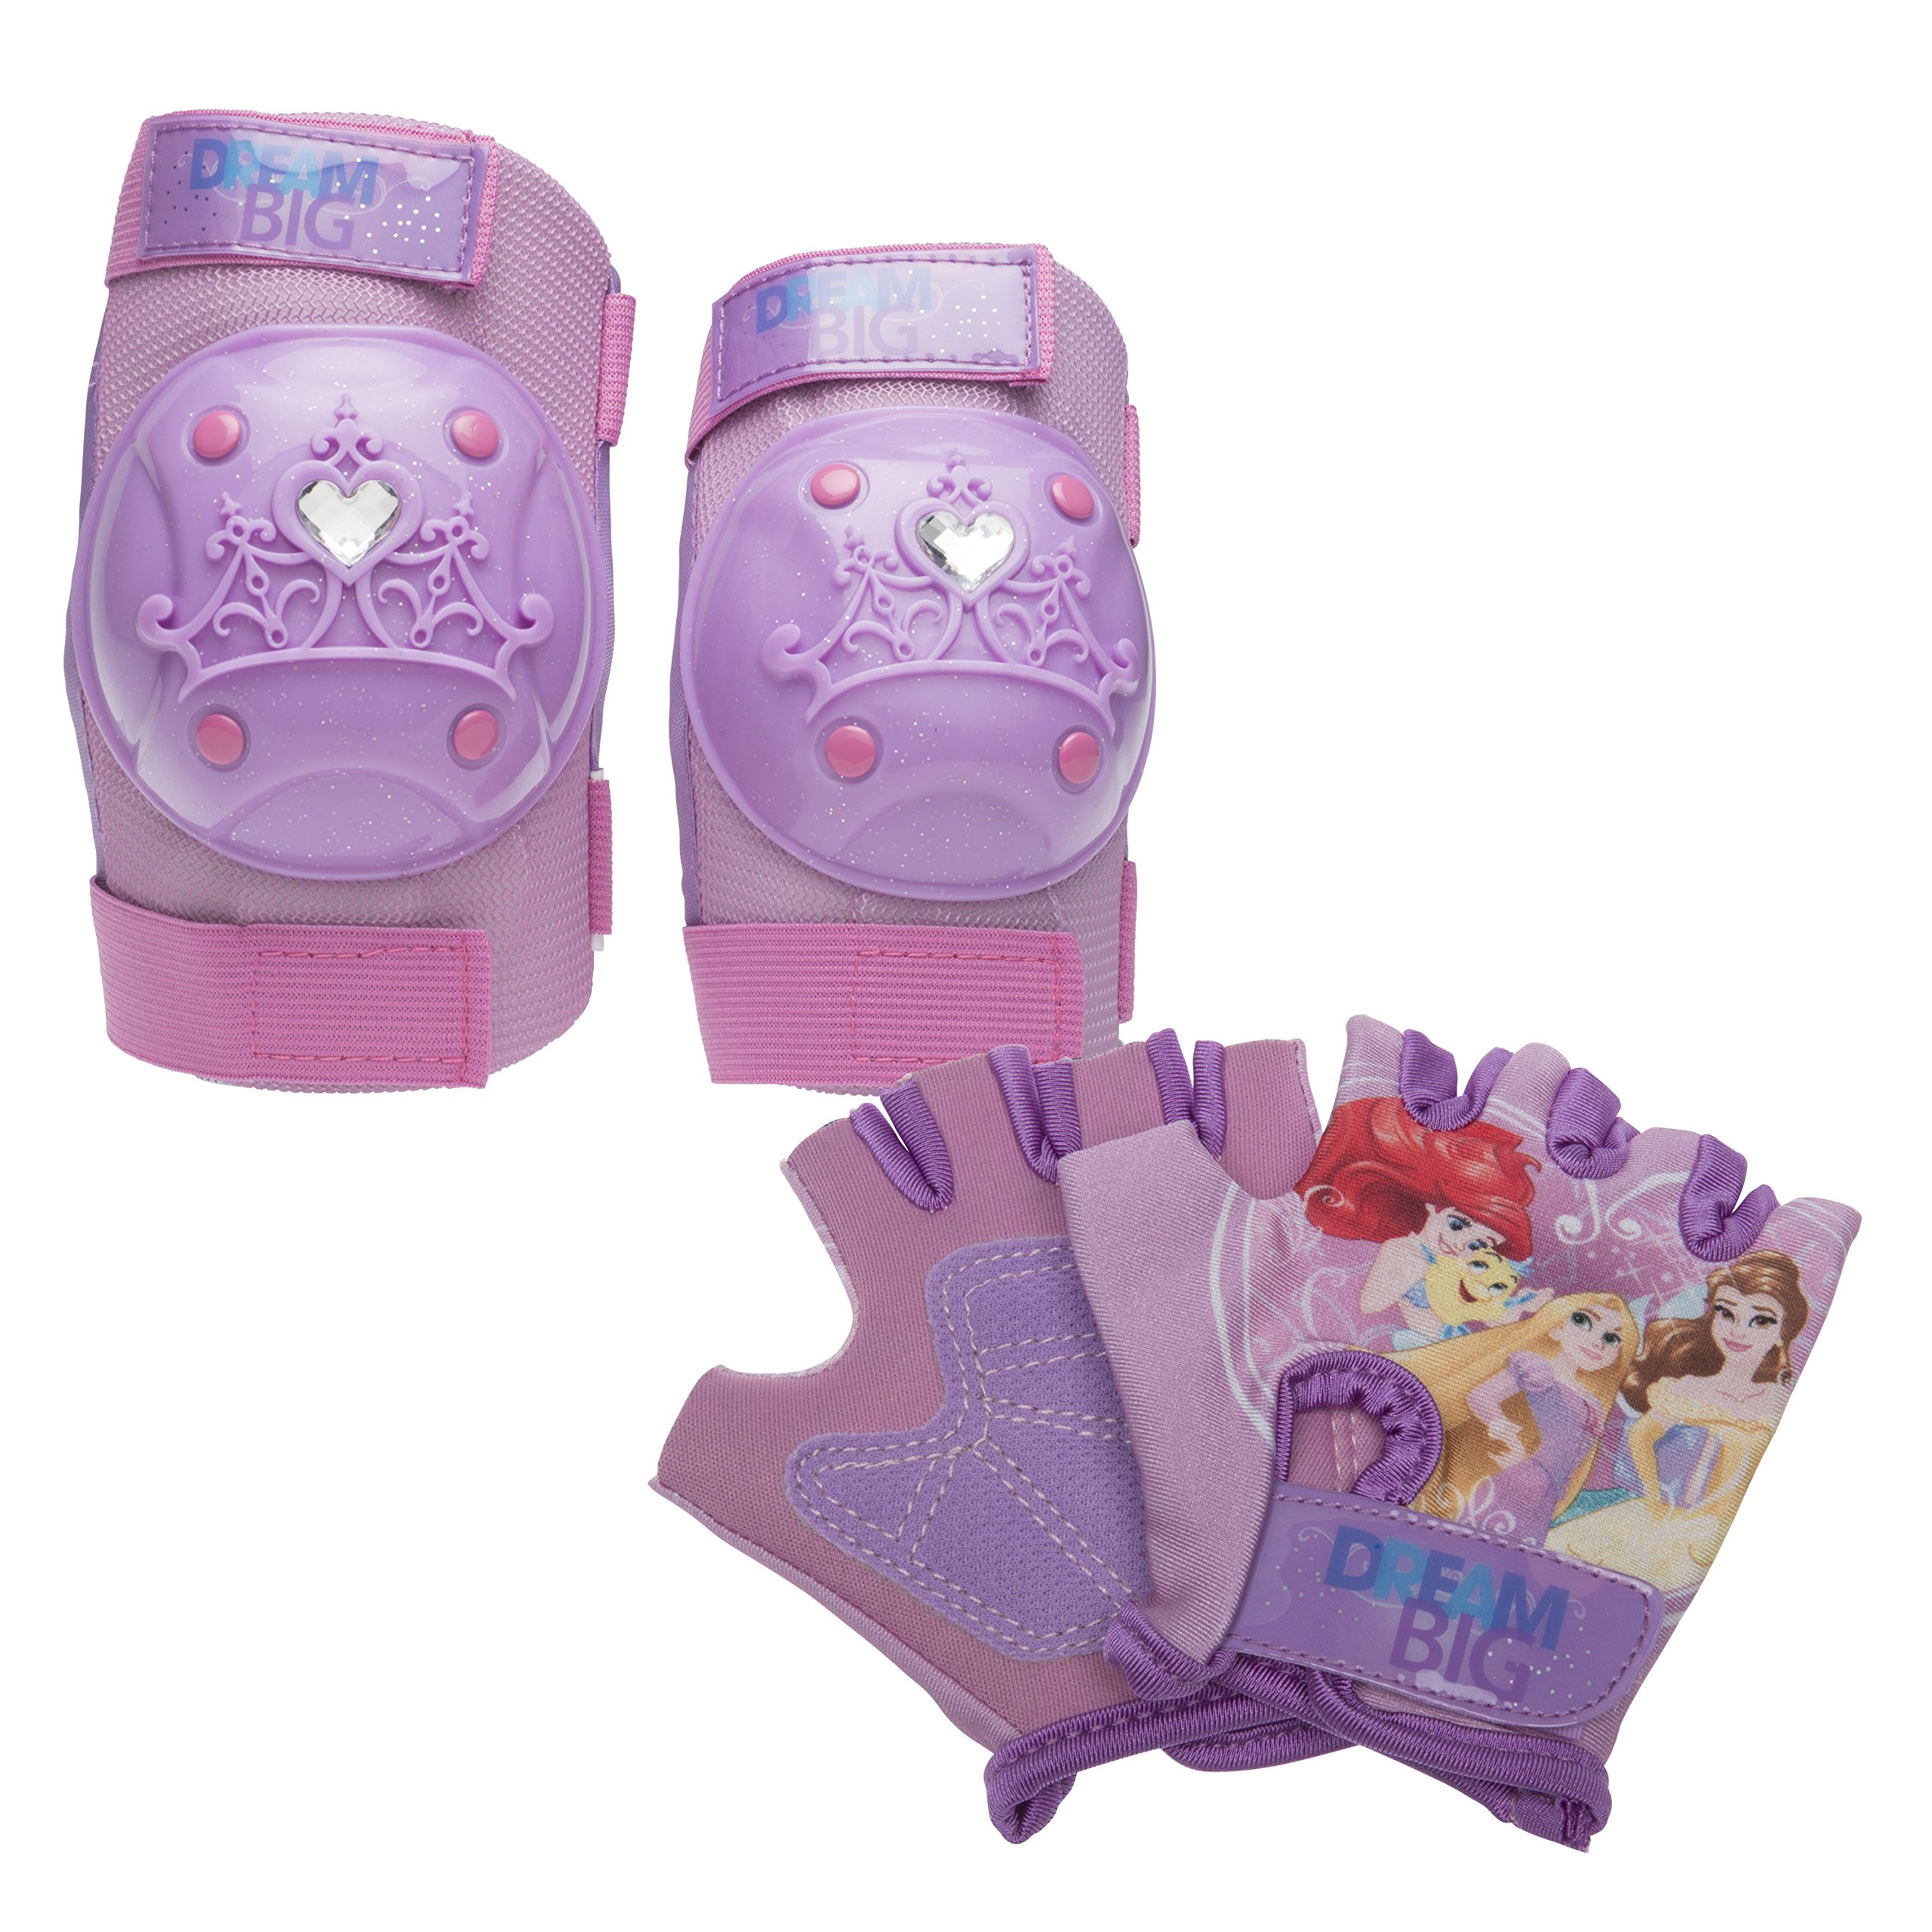 Bell Disney Princess Pad & Glove Set by Bell (Image #1)